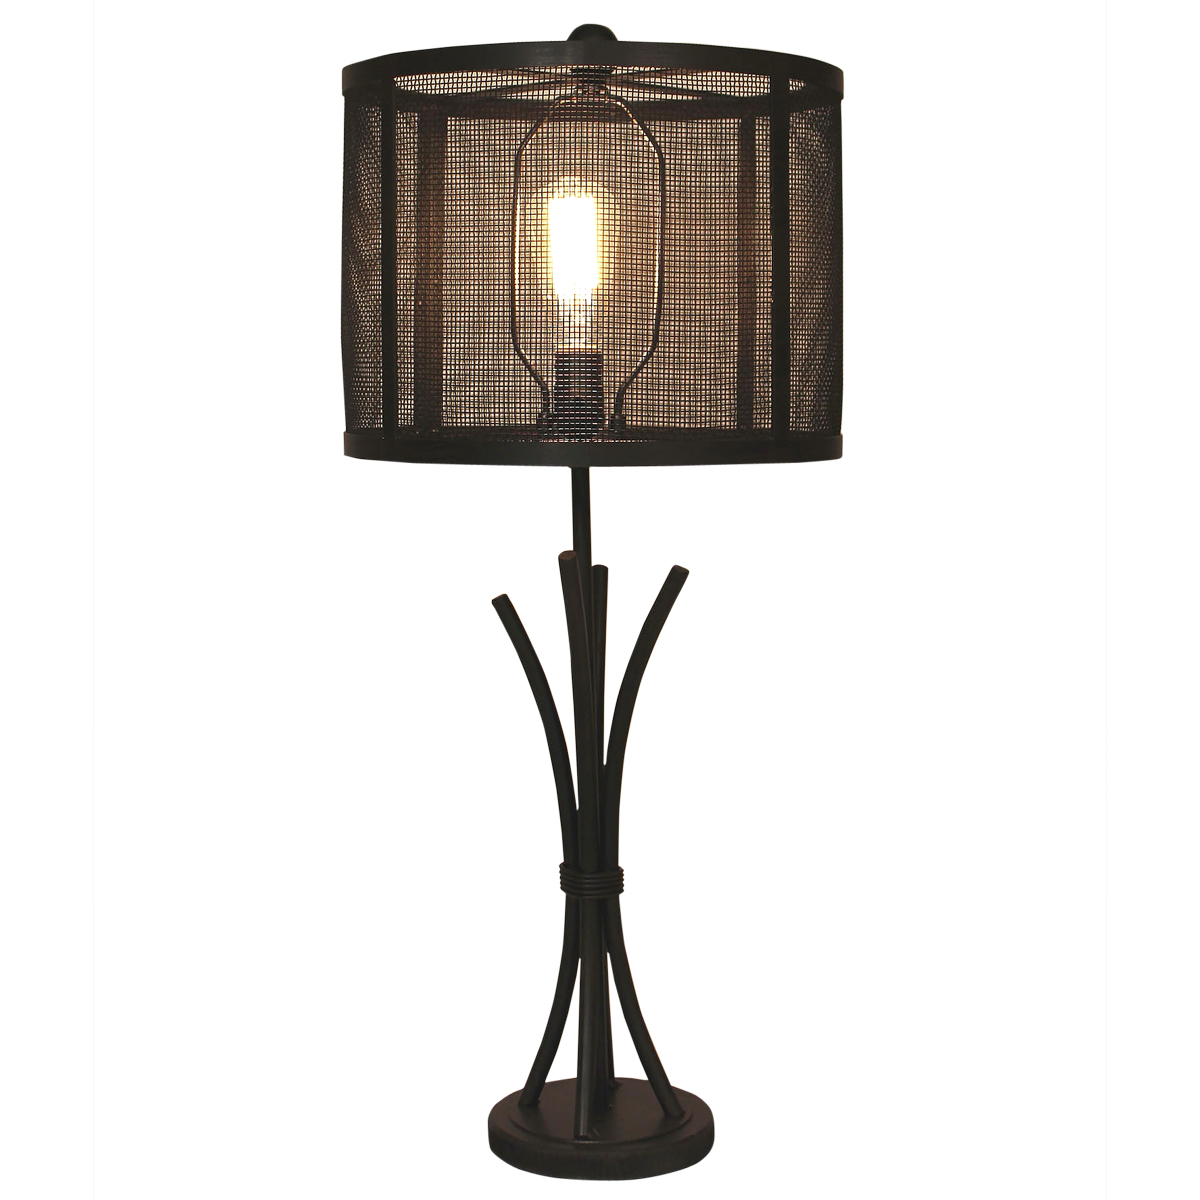 Kodiak Iron Bundle Table Lamp with Metal Mesh Shade